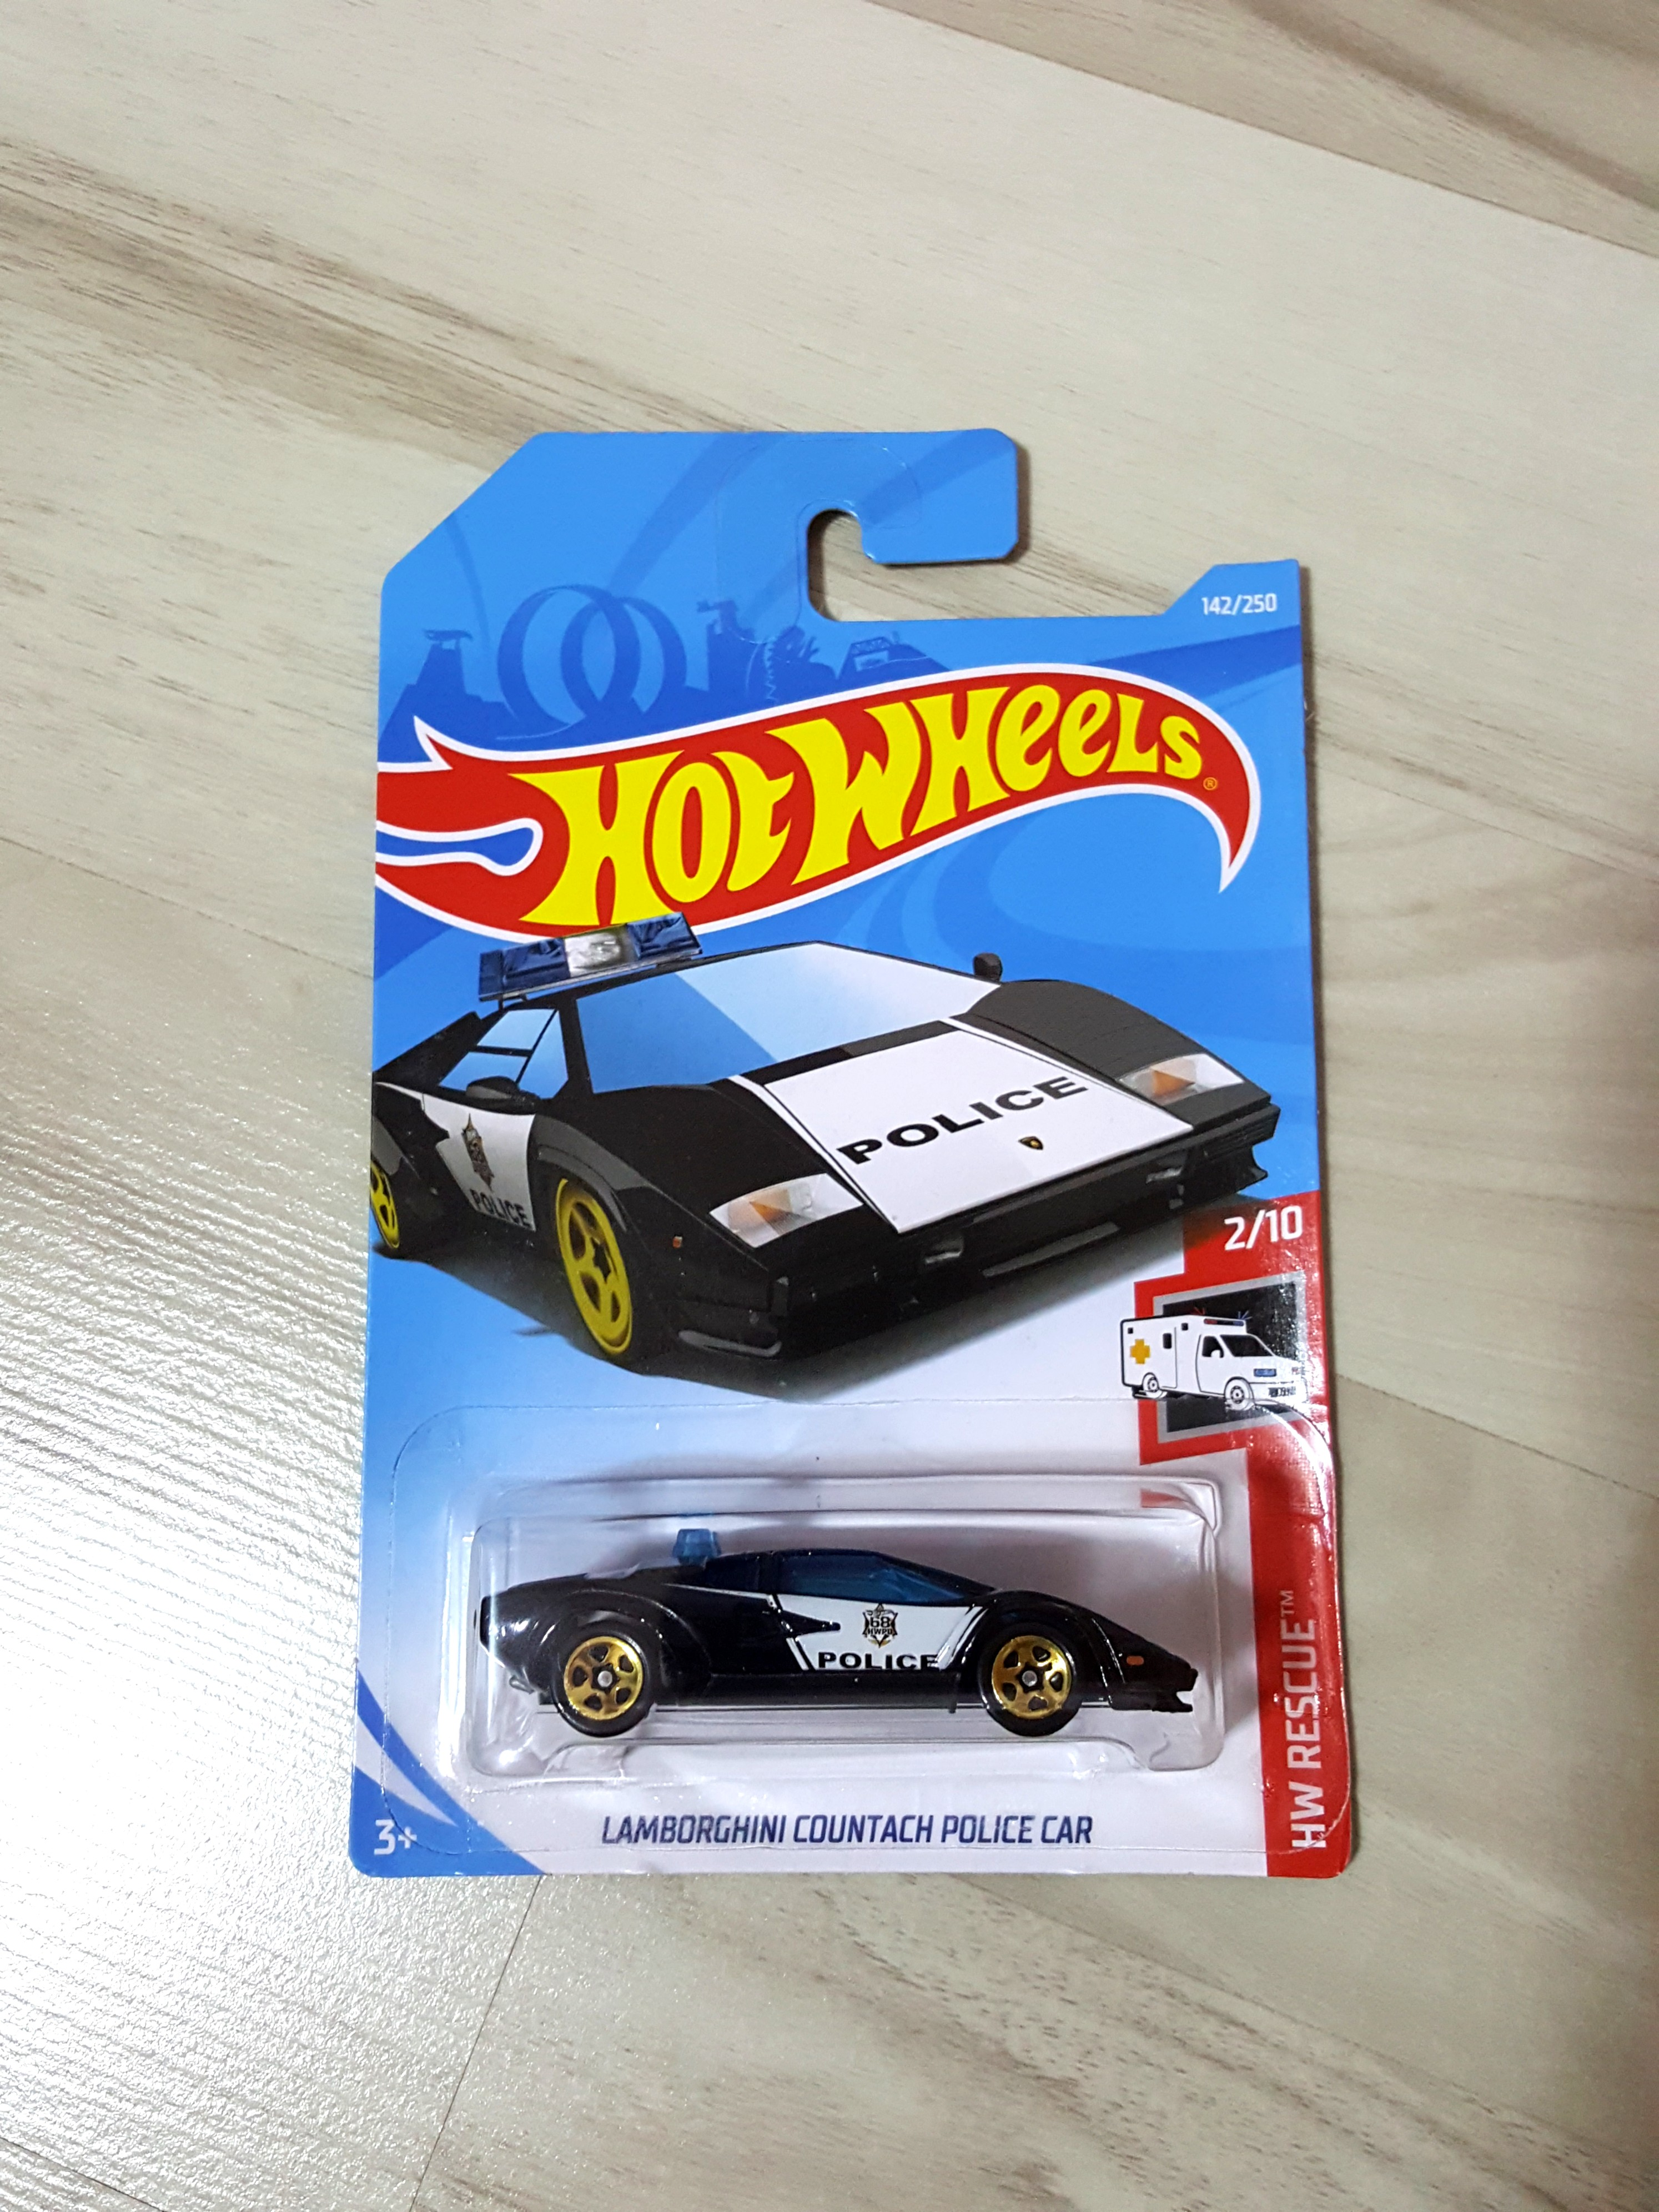 Hot Wheels Countach Police Toys Games Bricks Figurines On